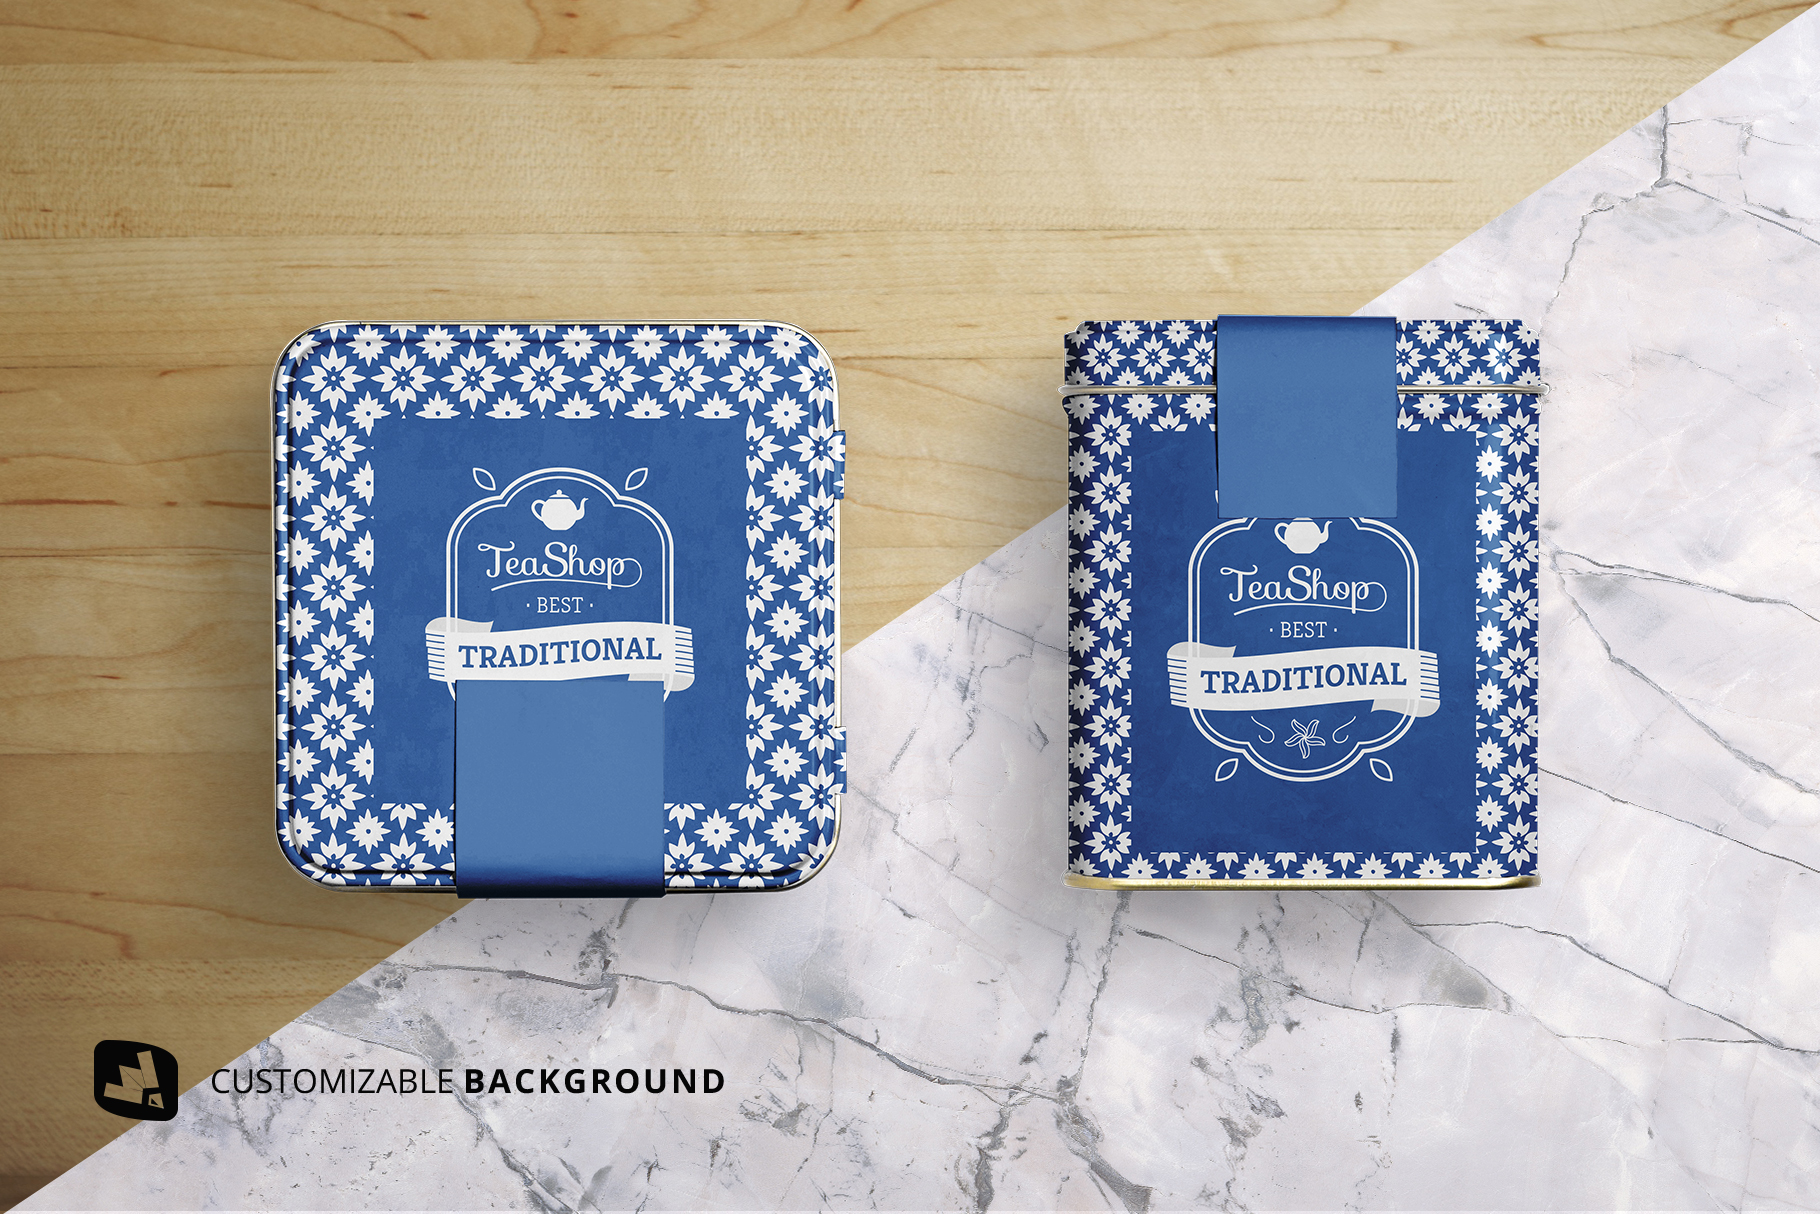 background options of the organic tea tin box packaging mockup